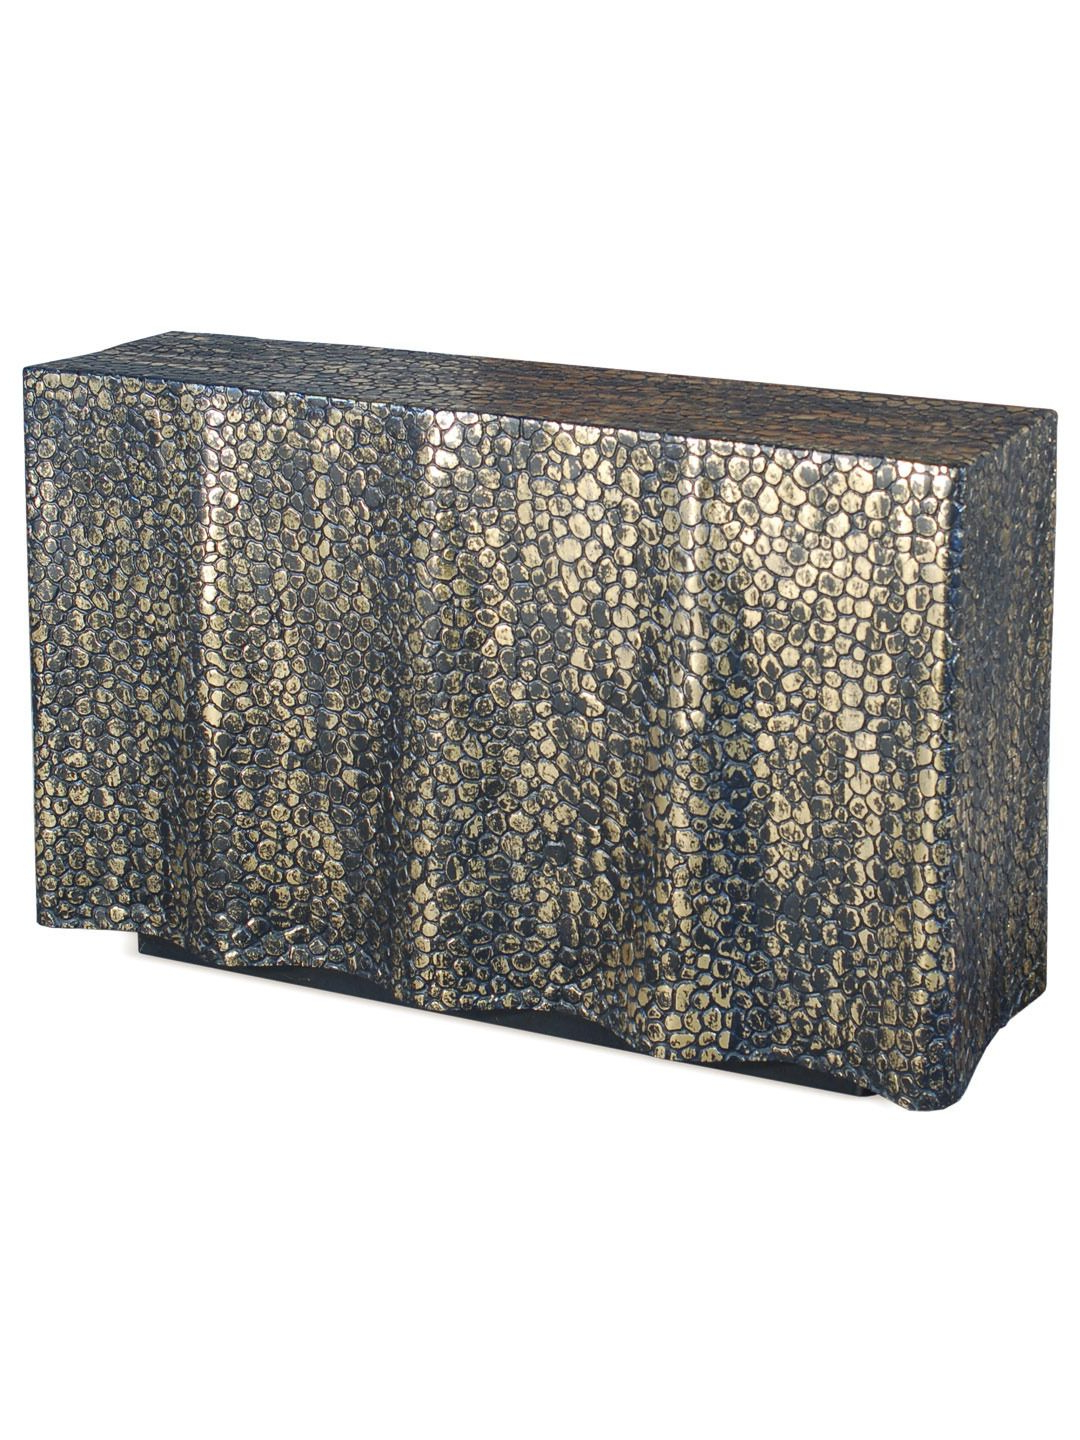 Curtain Console Tablephillips Collection At Gilt | Tables Inside Phillip Brass Console Tables (Gallery 10 of 20)